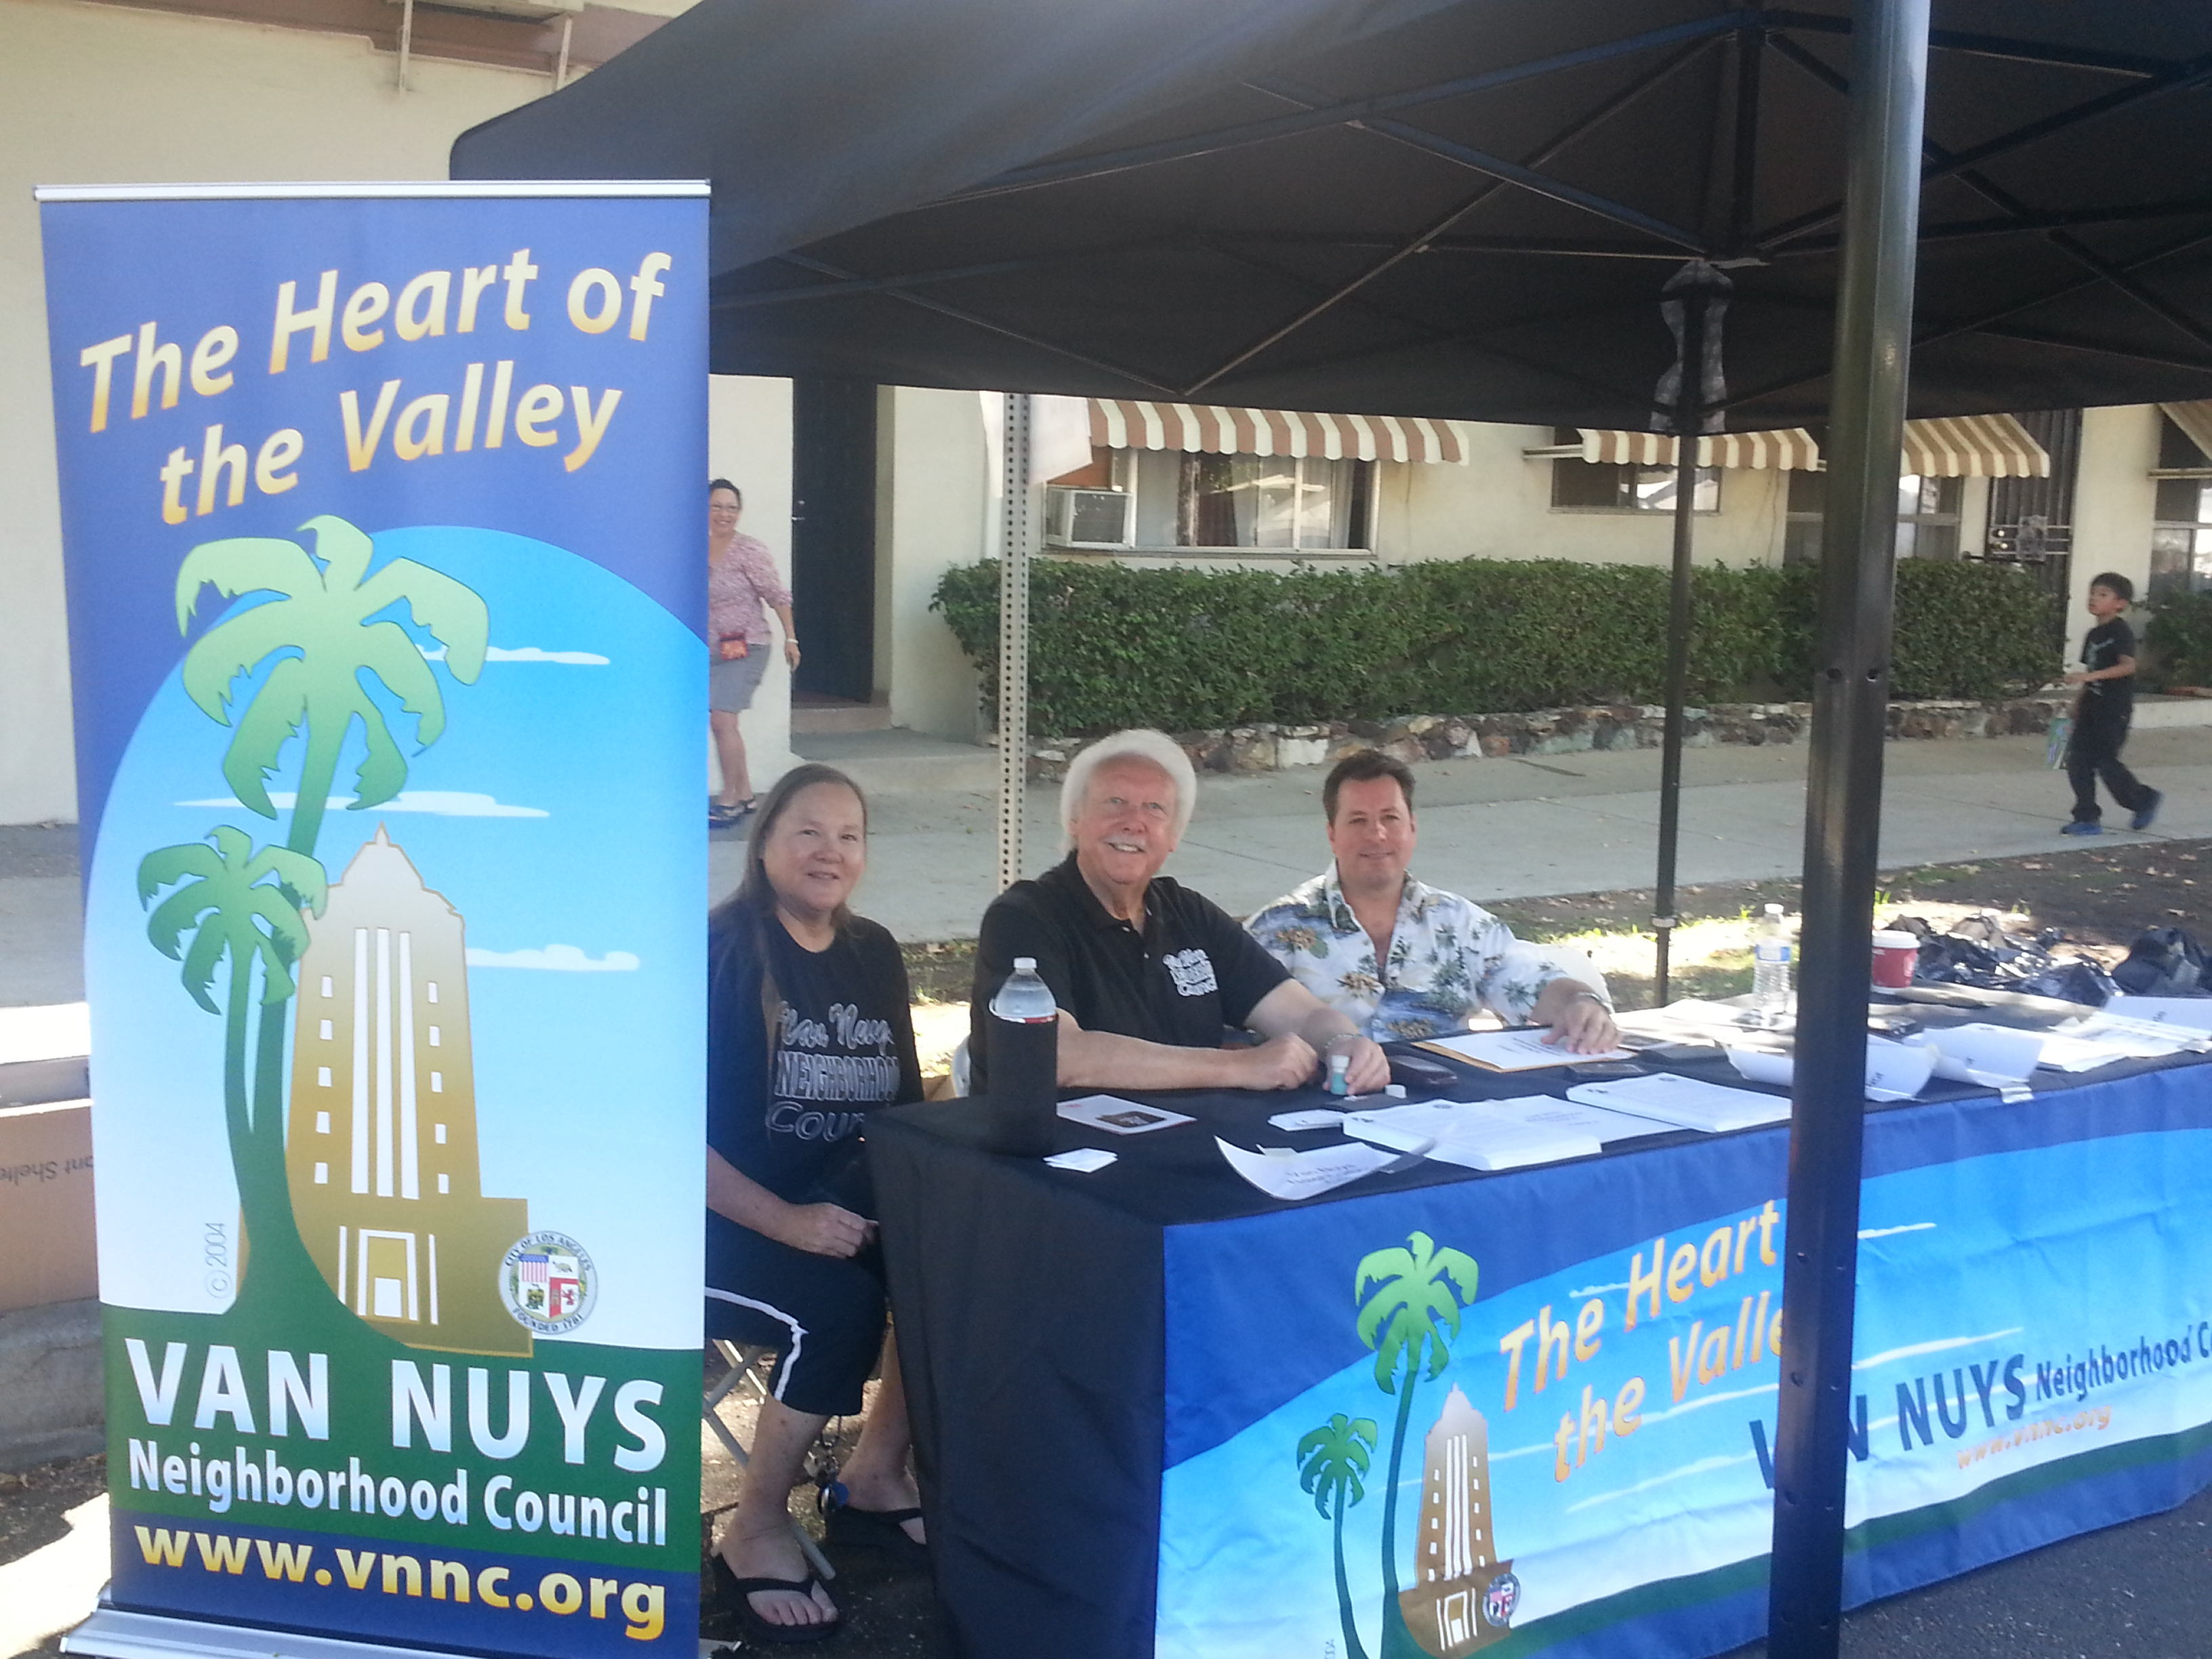 VNNC board members Jeanette Hopp, Howard Benjamin and John Camera with the new VNNC canopy and table